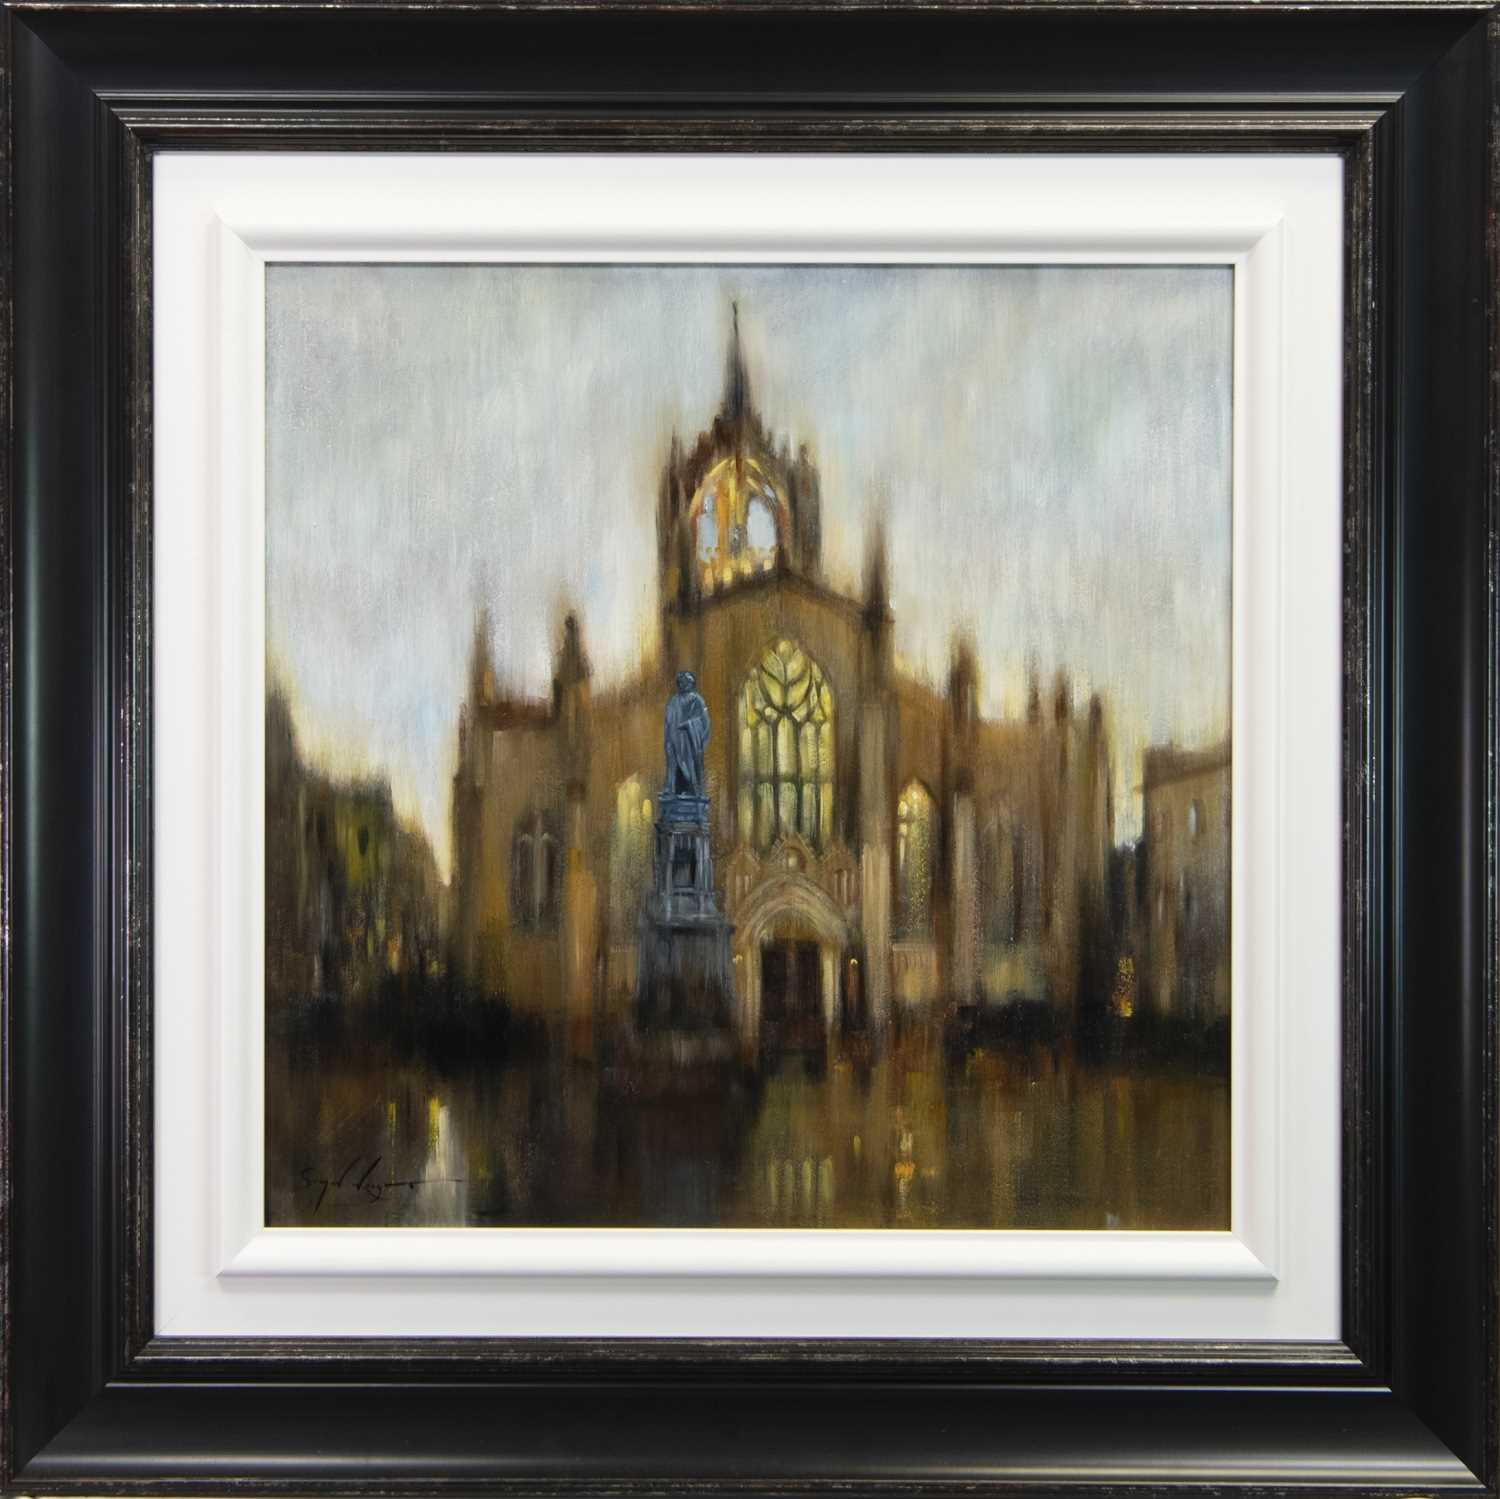 Lot 118 - ST GILES CATHEDRAL, AN OIL BY SIMON WRIGHT